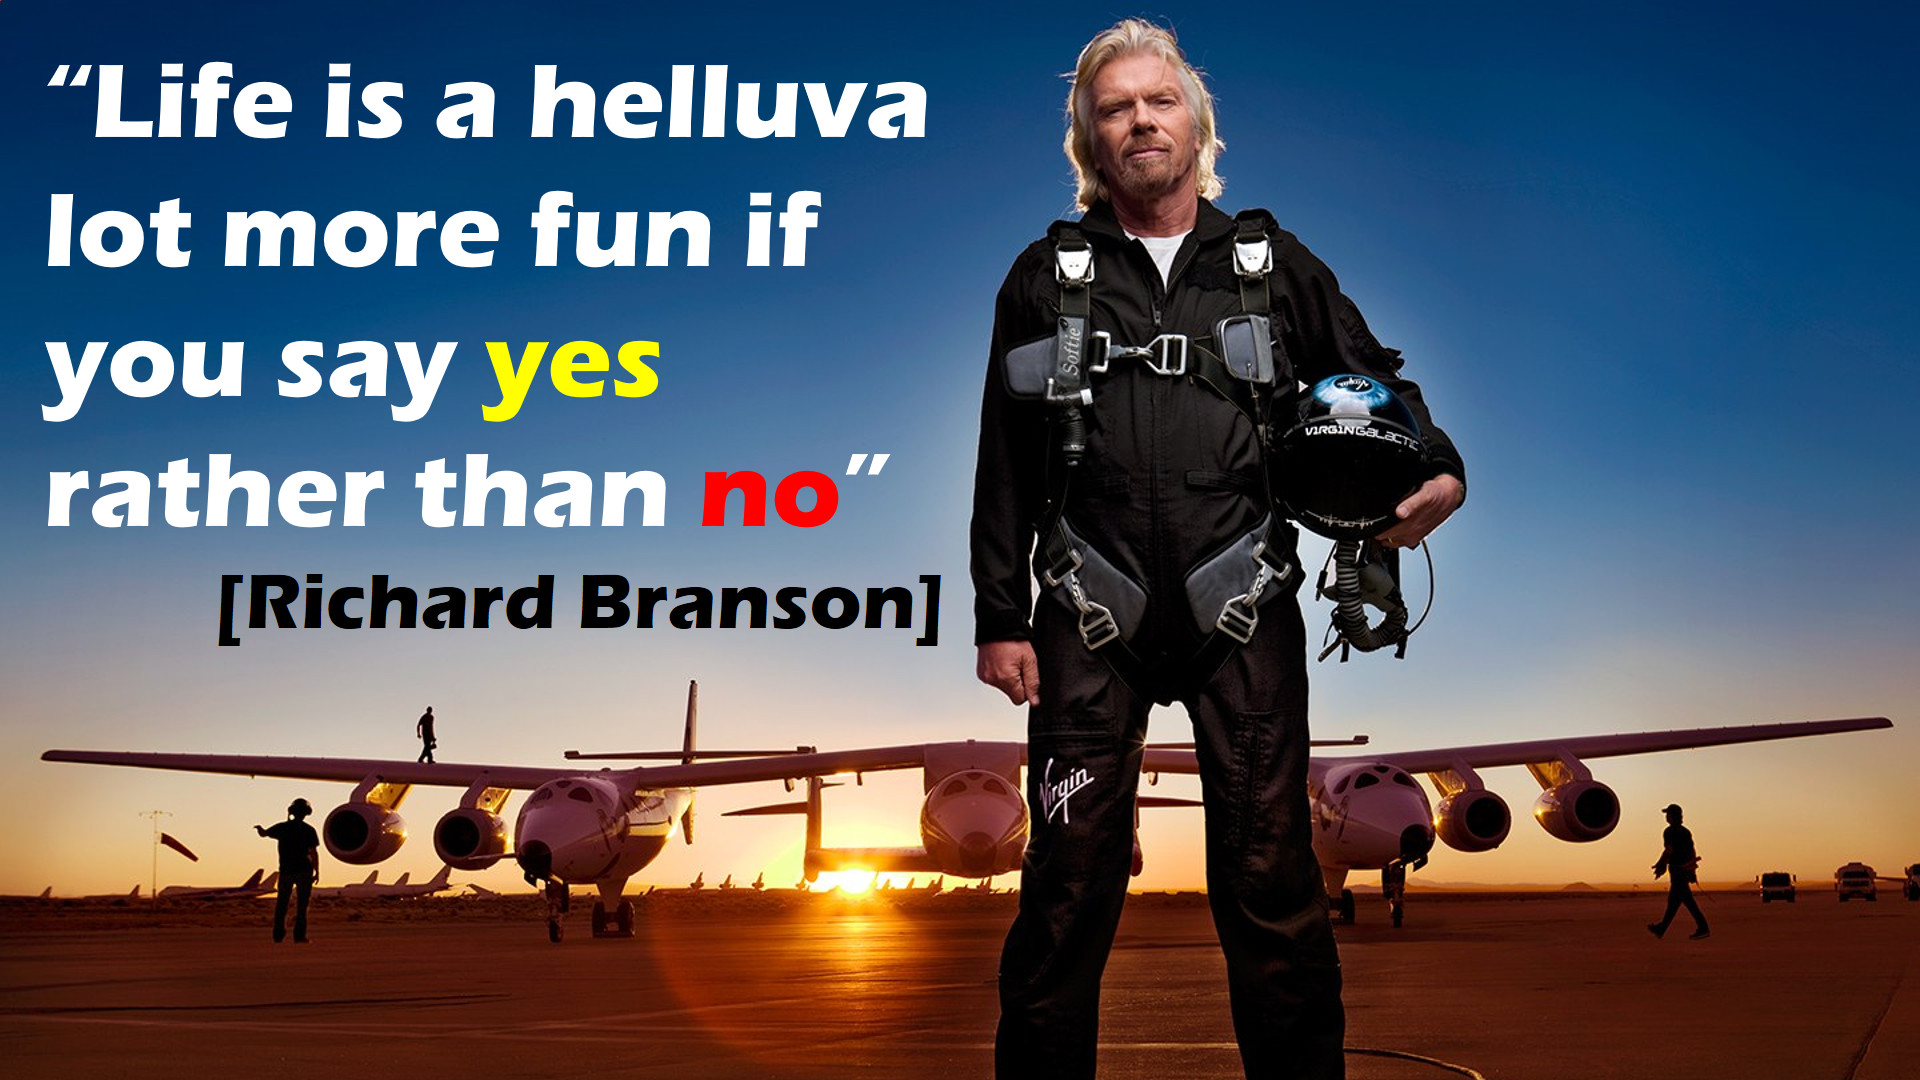 Life is a helluva lot more fun if you say YES rather than no. Richard Branson